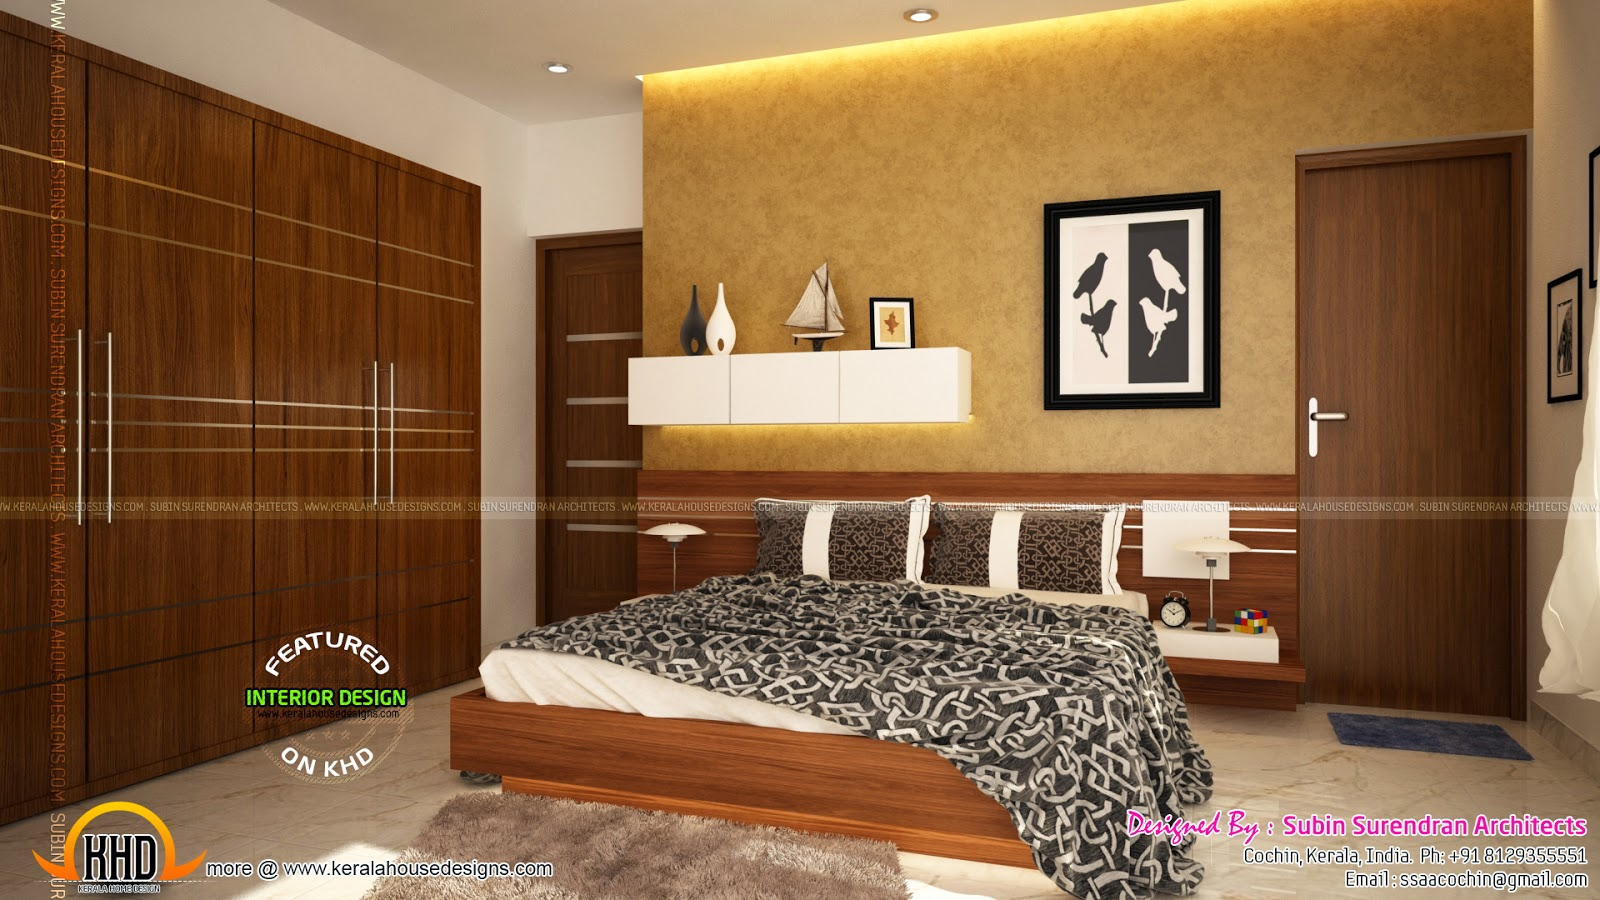 Kerala style low cost double storied home keralahousedesigns Home interior design ideas in chennai